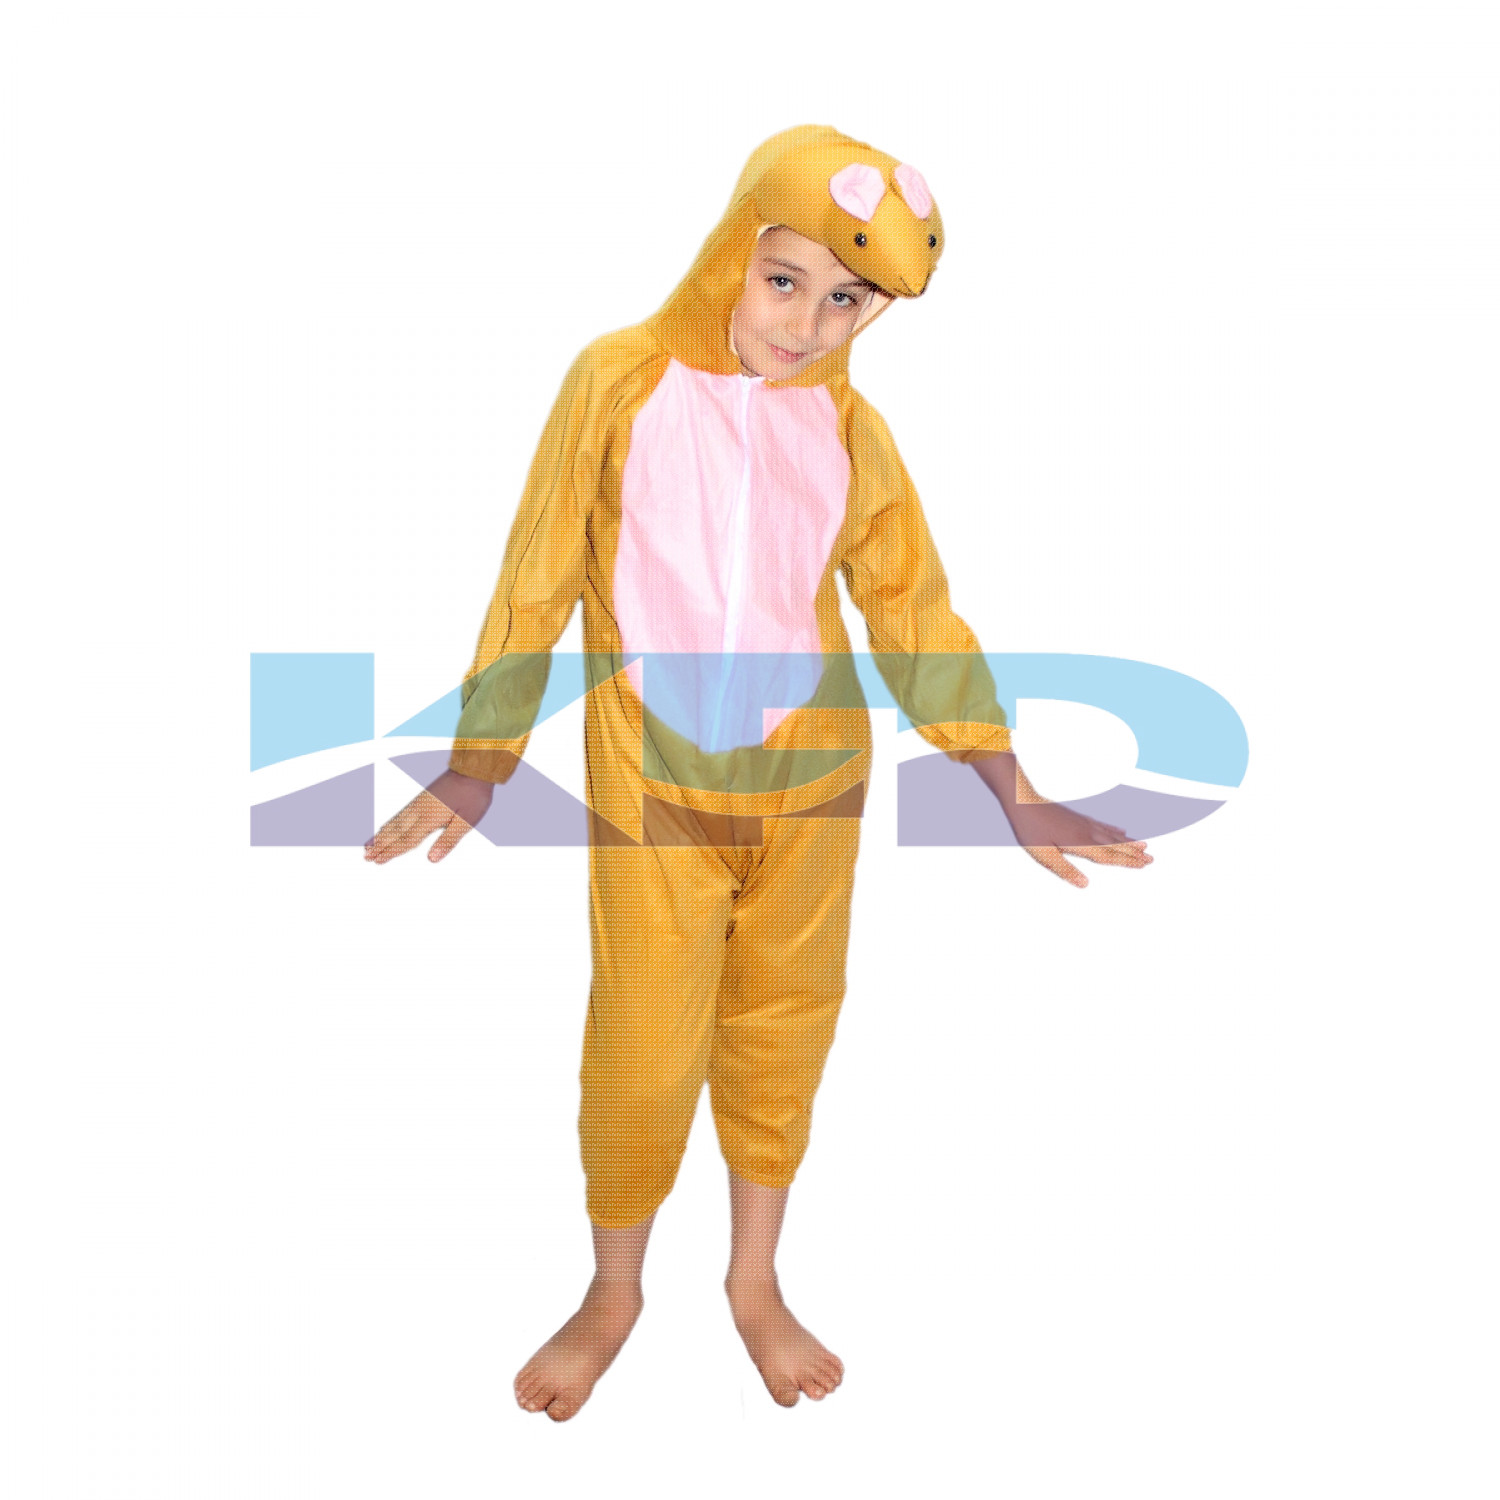 Rat fancy dress for kids,Animal Costume for School Annual function/Theme Party/Competition/Stage Shows Dress